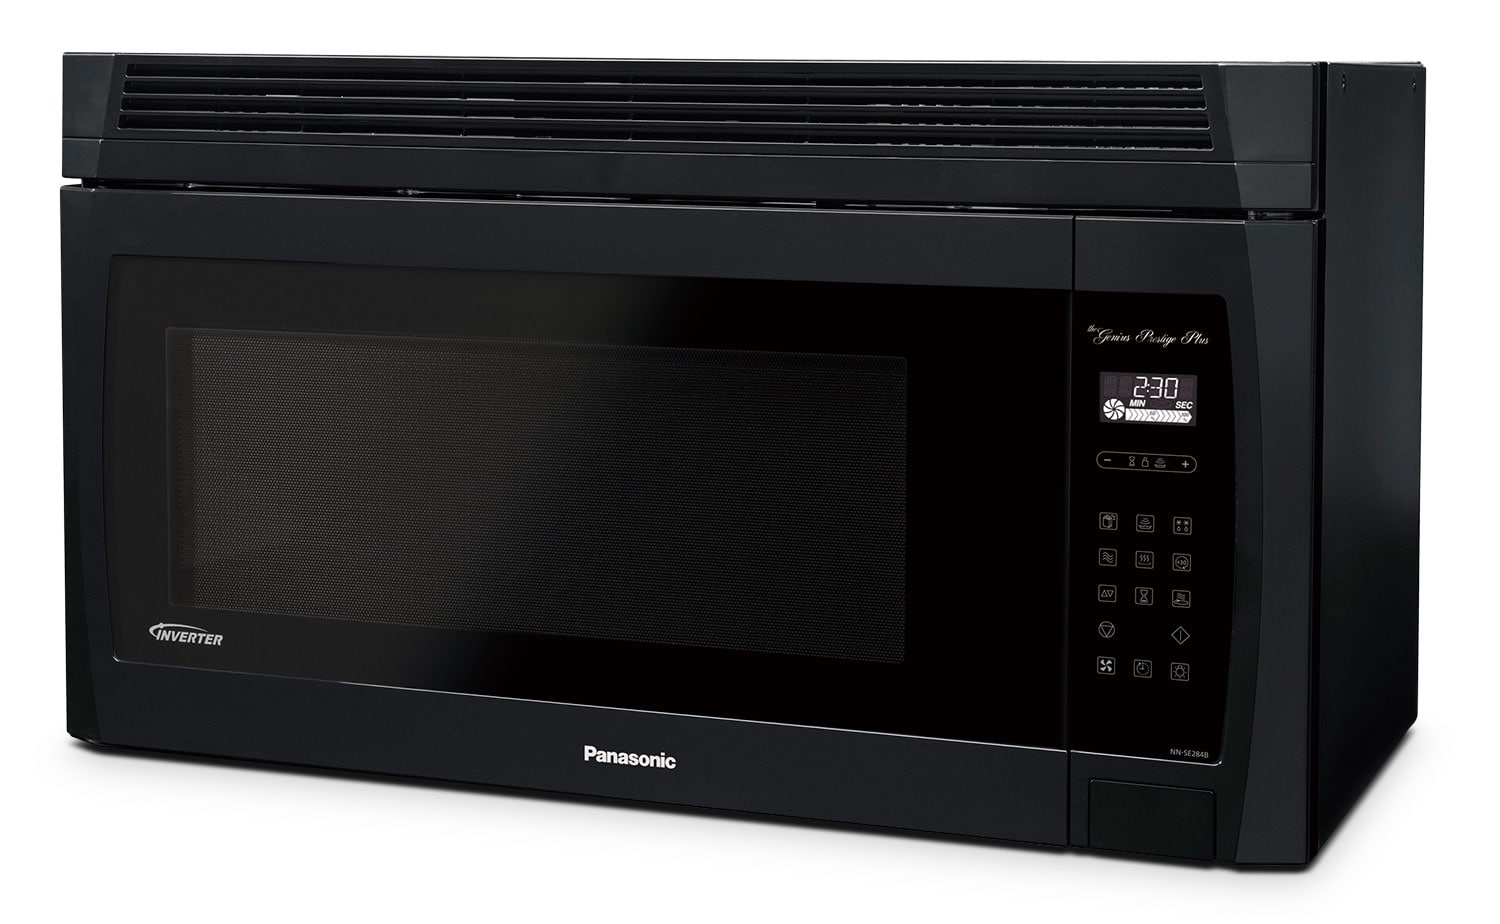 Cooking Products - Panasonic® 2.0 Cu. Ft. Genius® Prestige® Plus Over-the-Range Microwave Oven - Black